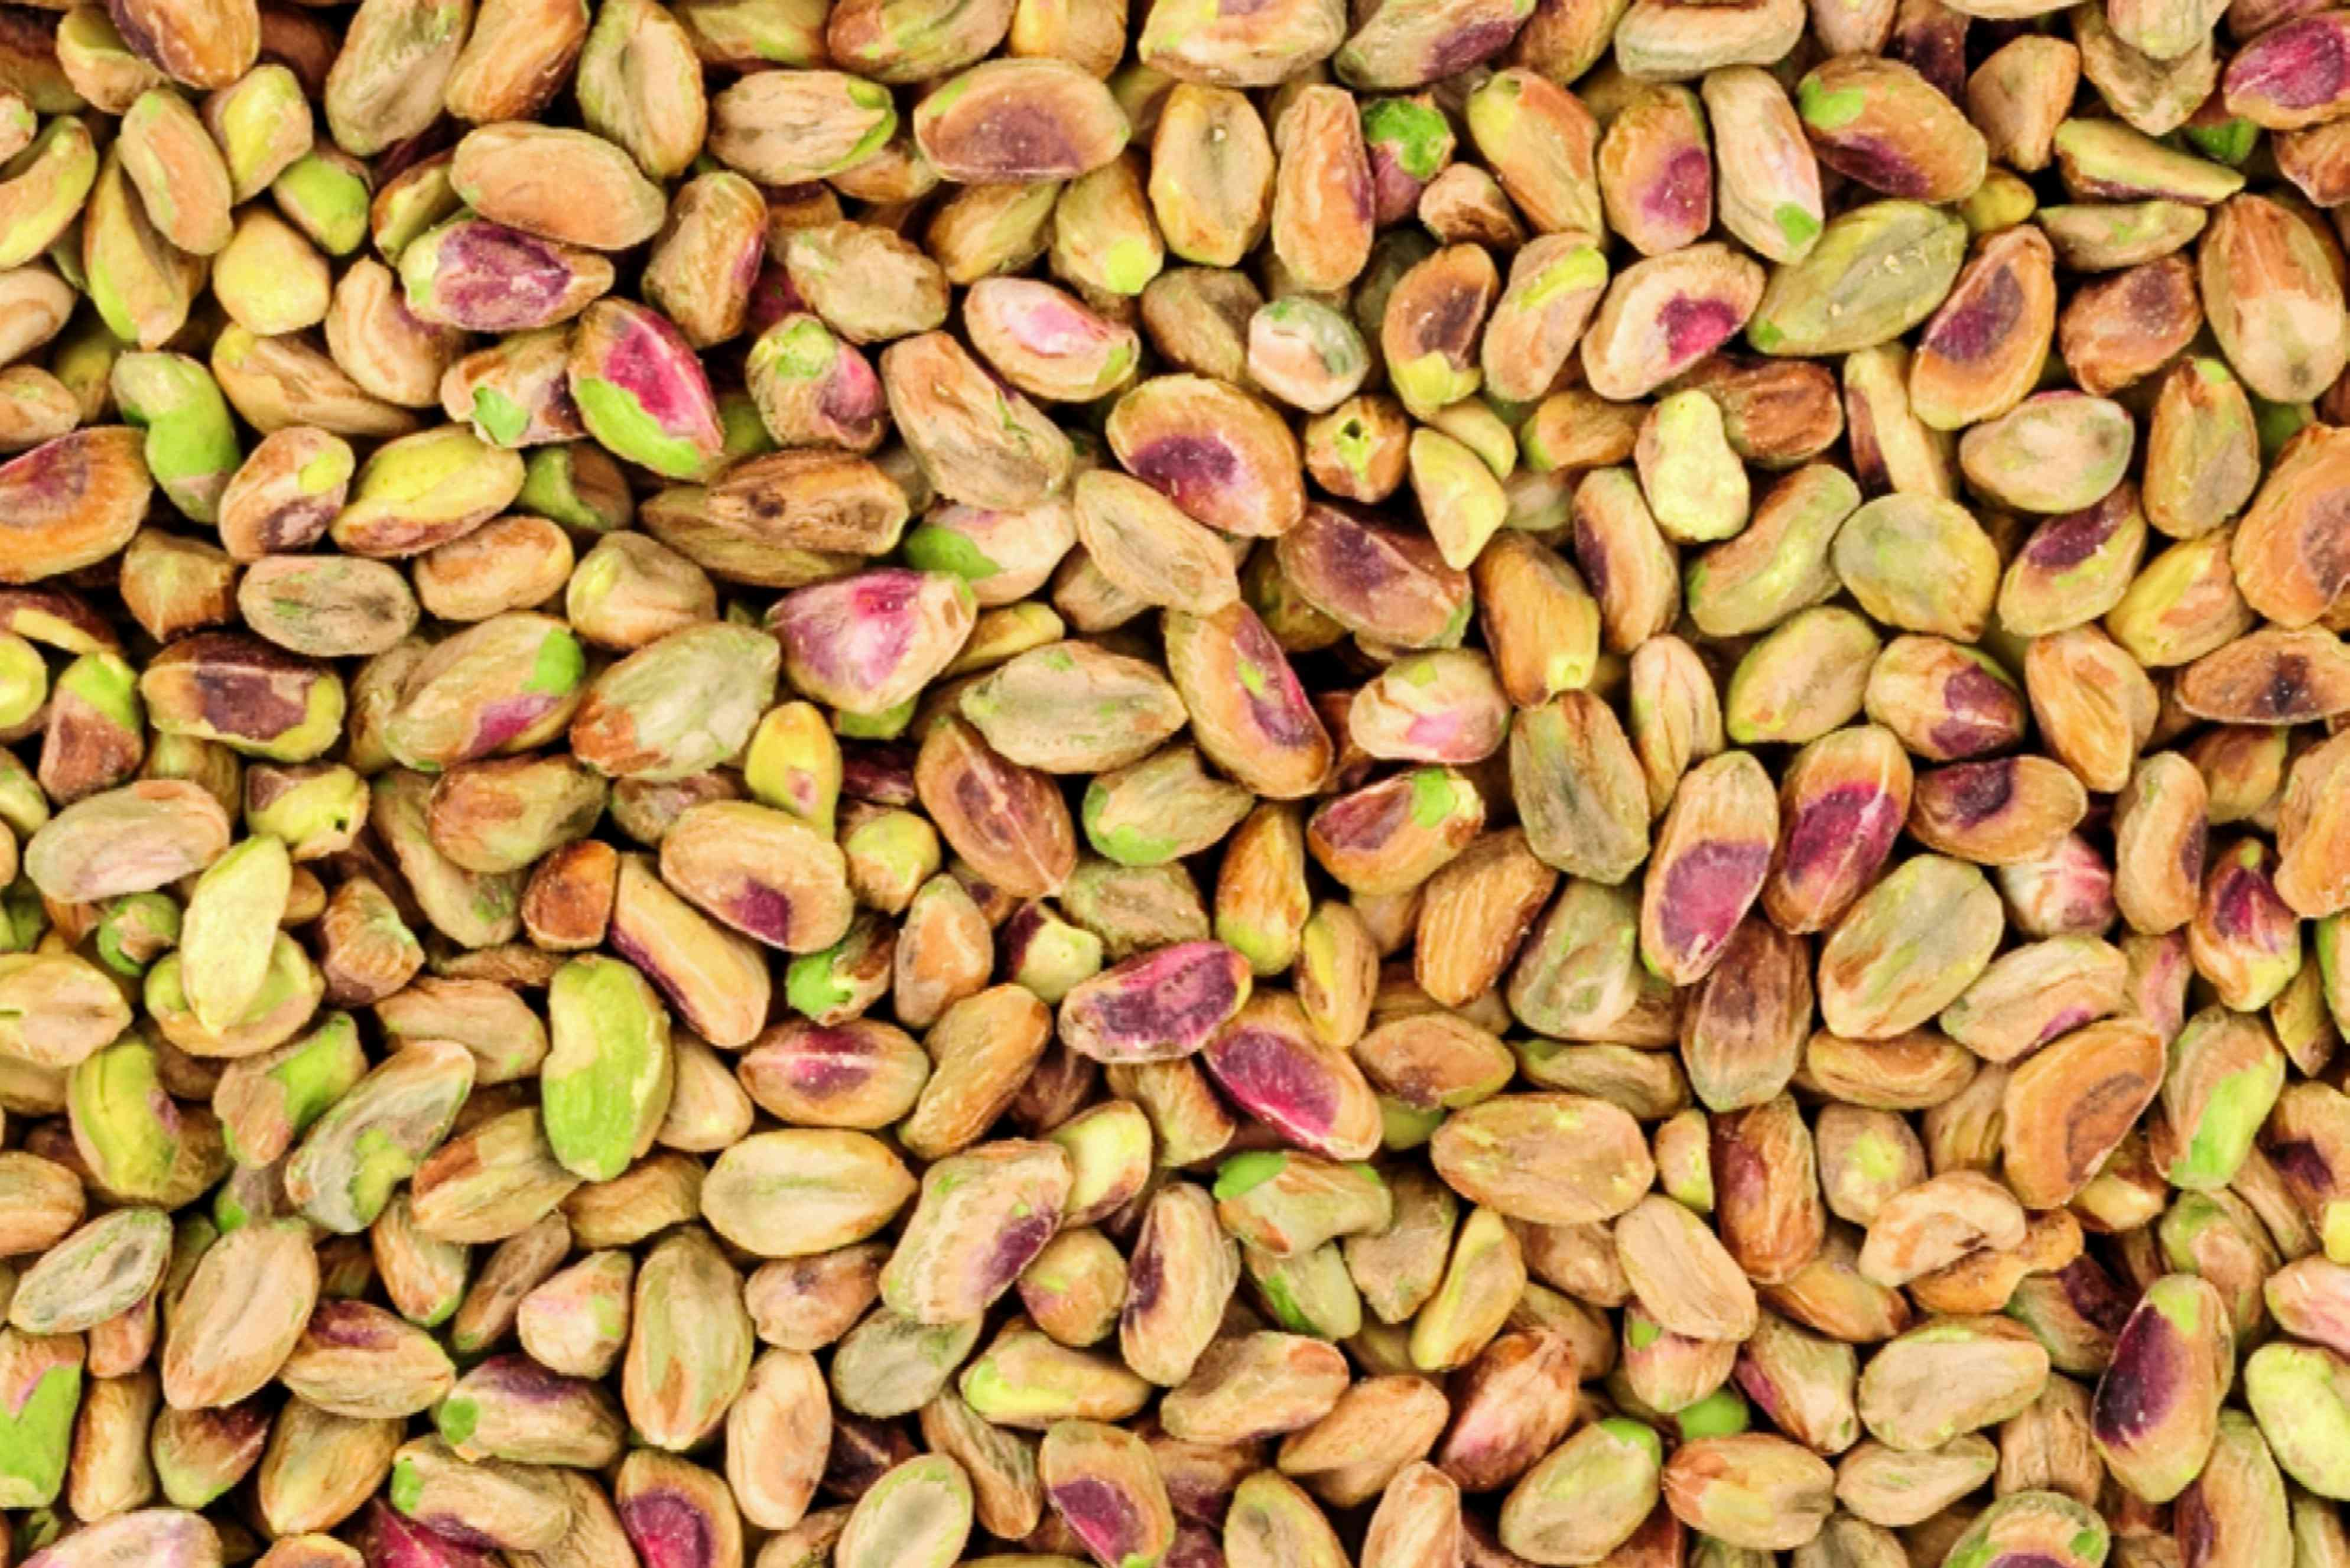 Harvested pistachio nuts with red and green spots stacked on each other closeup